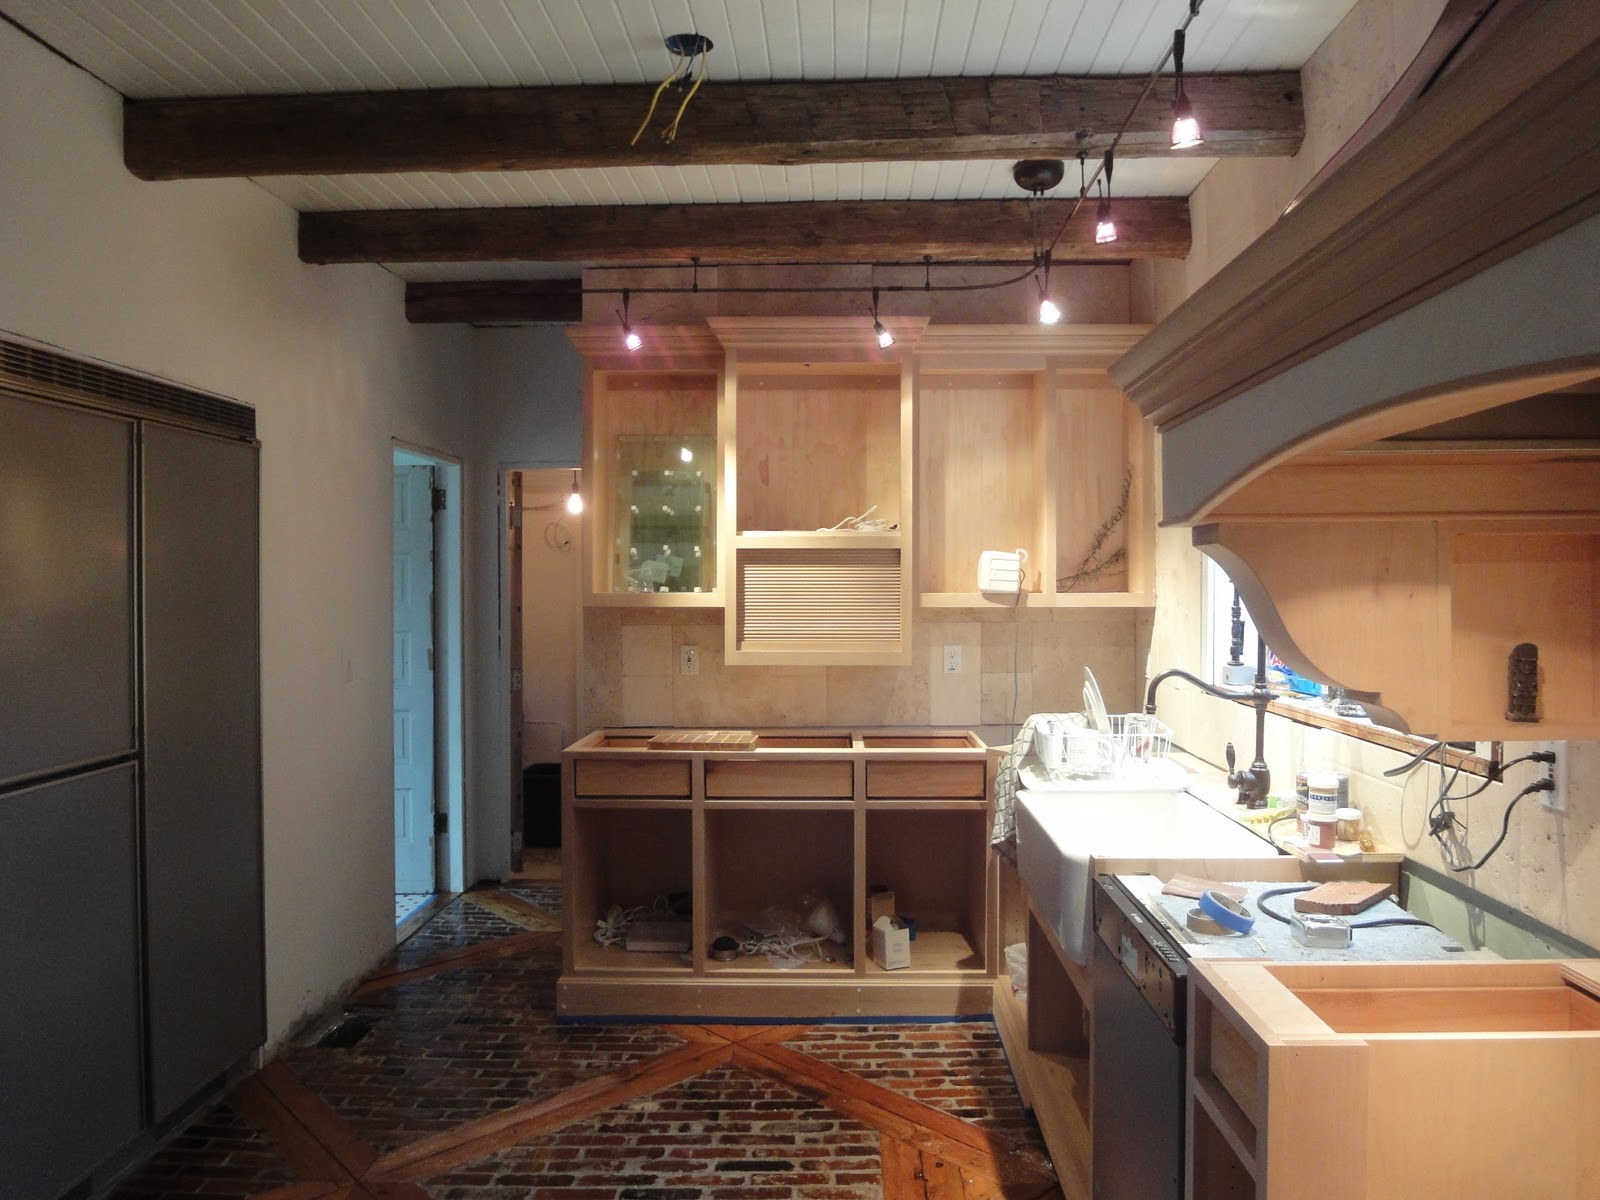 remodeling your kitchen cabinets replacing kitchen countertops Remodeling Your Kitchen Cabinets Installing